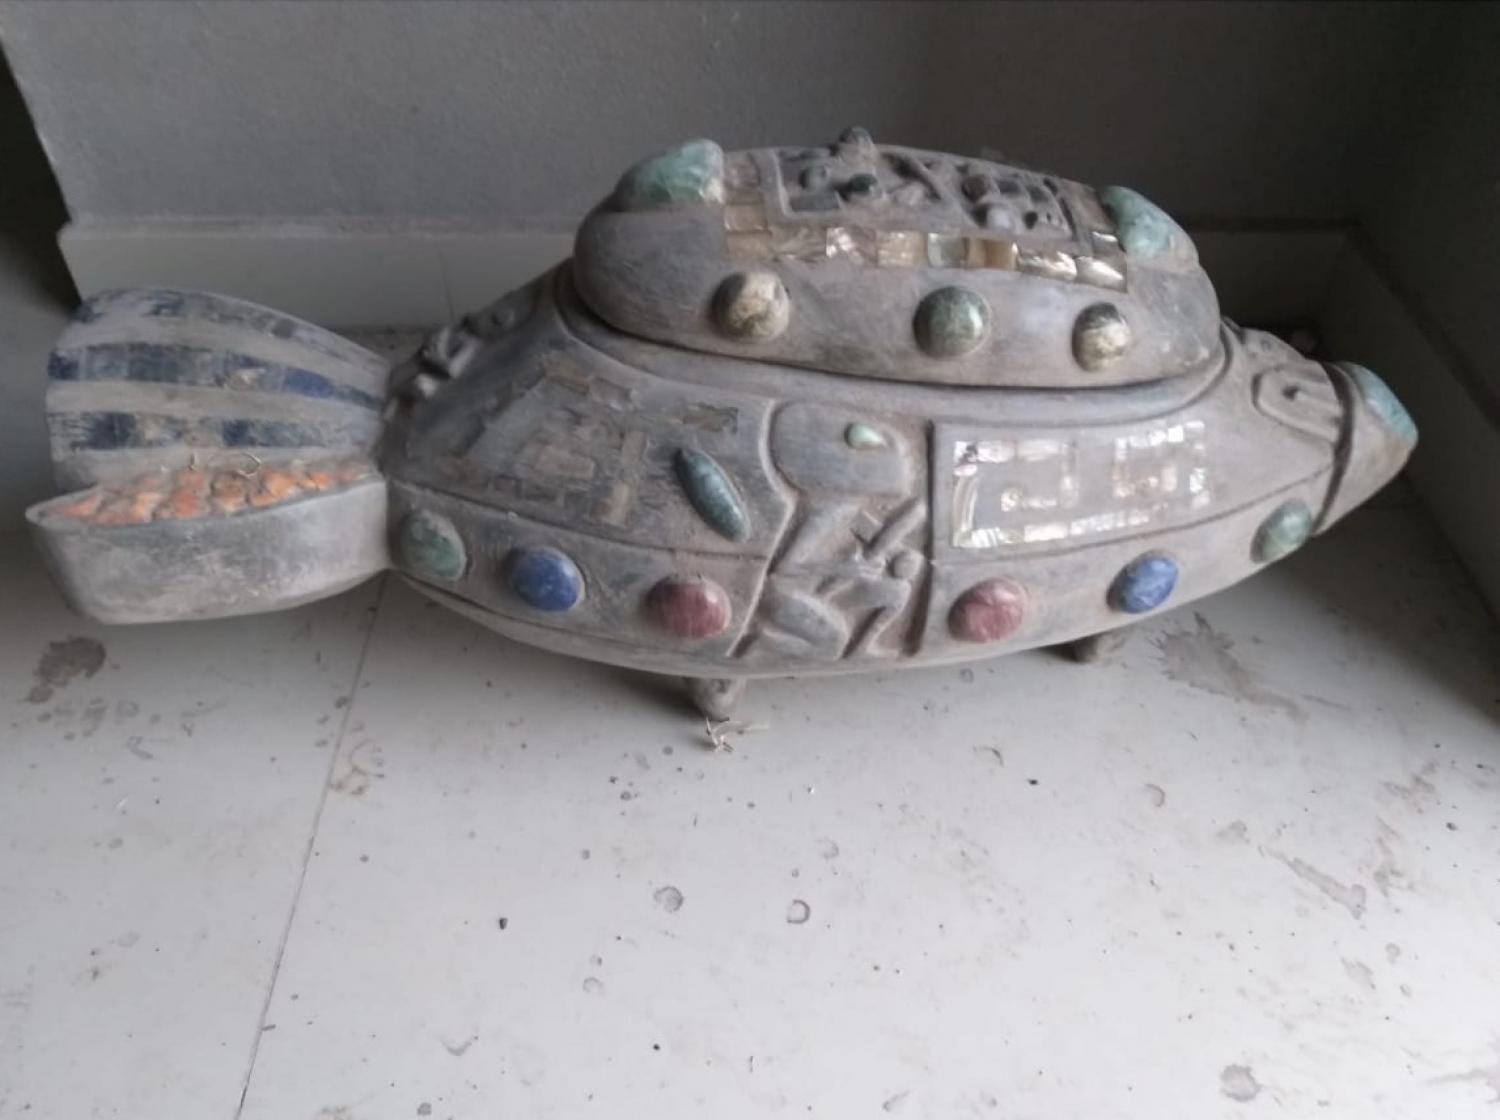 ALIEN SPACE CRAFT FOUND AT  ONE OF THE ALIEN /AZTEC DIG SITES-THE TOP COMES OFF TO REVEAL ALIEN OCCUPANTS-COPYRIGHT GENSIX PRODUCTIONS